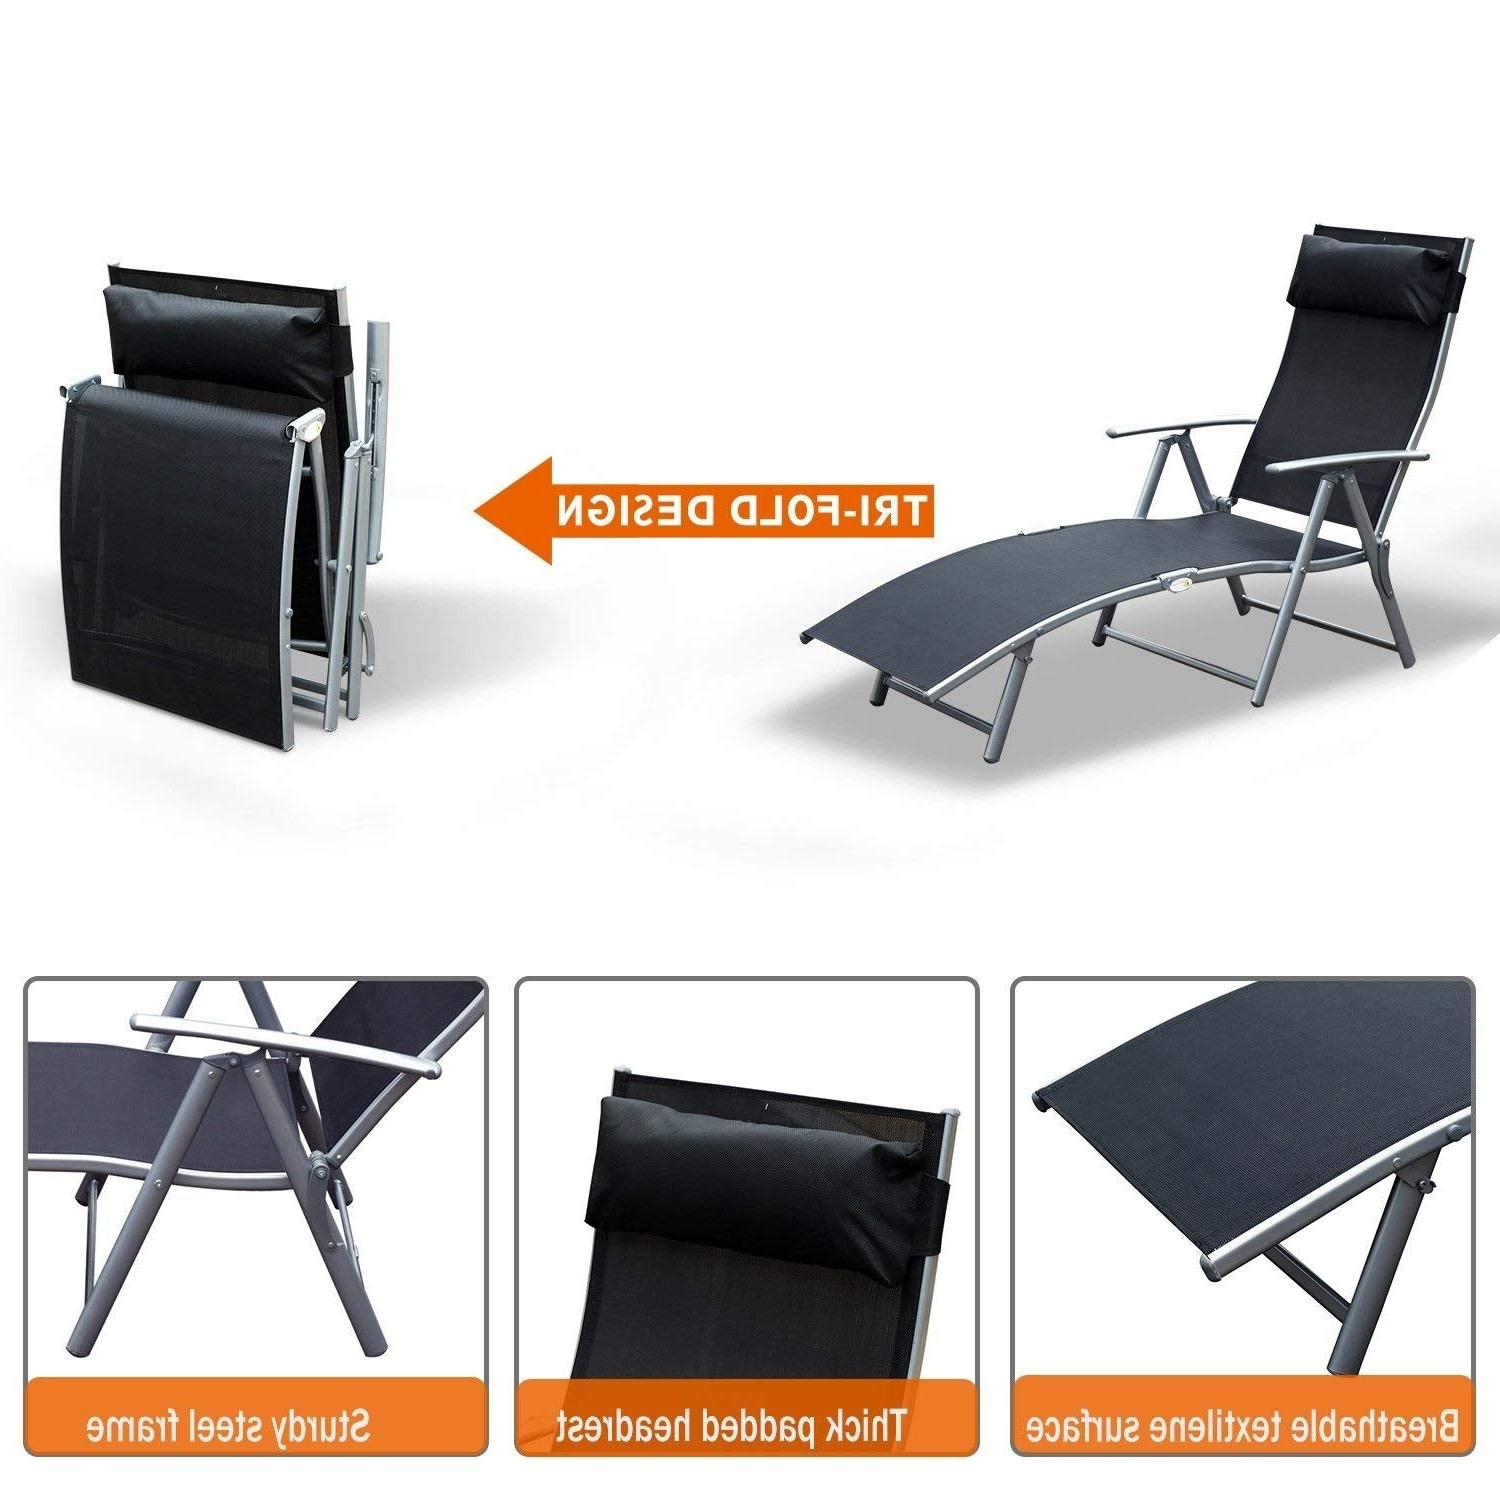 Steel Sling Fabric Outdoor Folding Chaise Lounges Intended For Well Liked Outsunny Steel Sling Fabric Outdoor Folding Chaise Lounge Chair Recliner – Black (View 11 of 25)